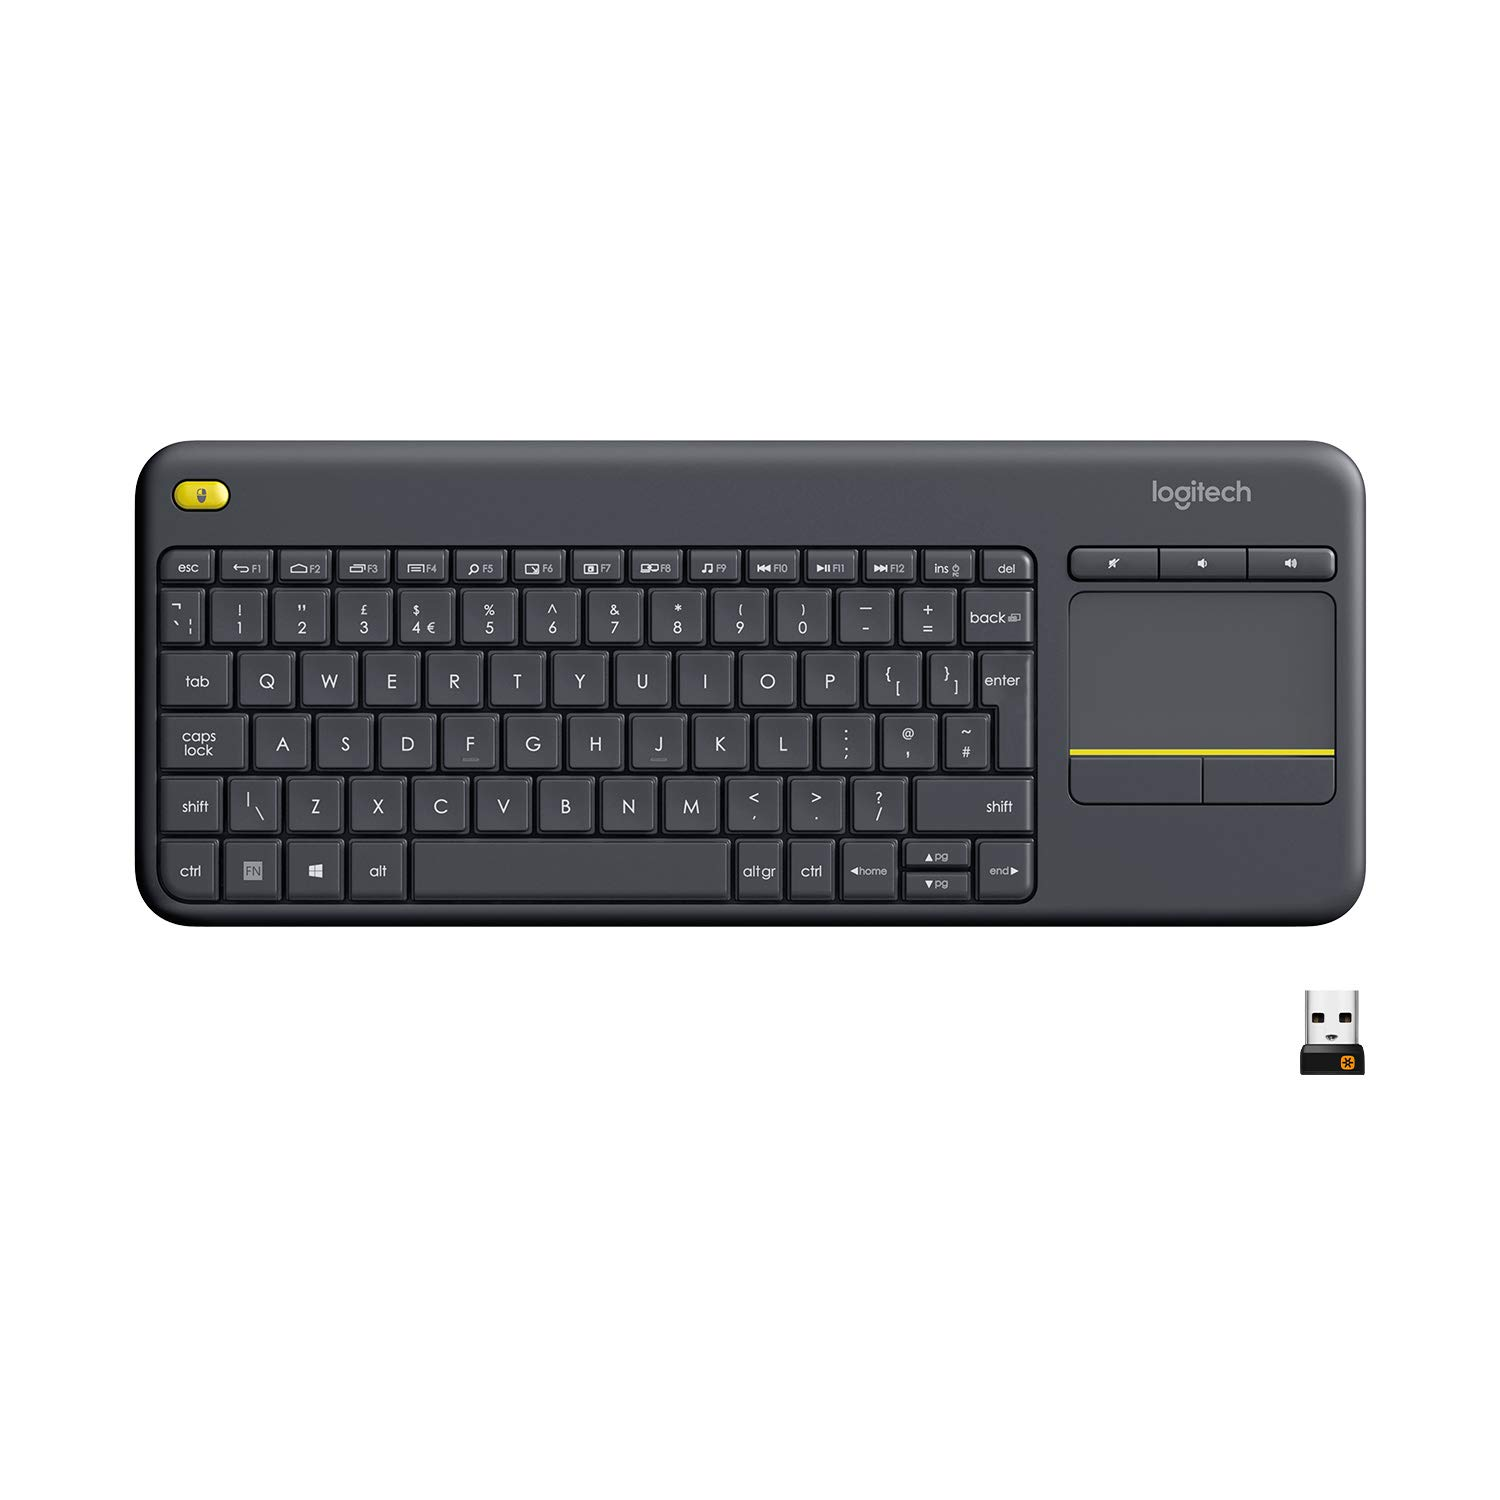 Logitech K400 Plus Wireless Livingroom Keyboard with Touchpad for Home Theatre PC Connected to TV, Customizable Multi-Media Keys, Windows, Android, Laptop/Tablet, QWERTY UK Layout - Black